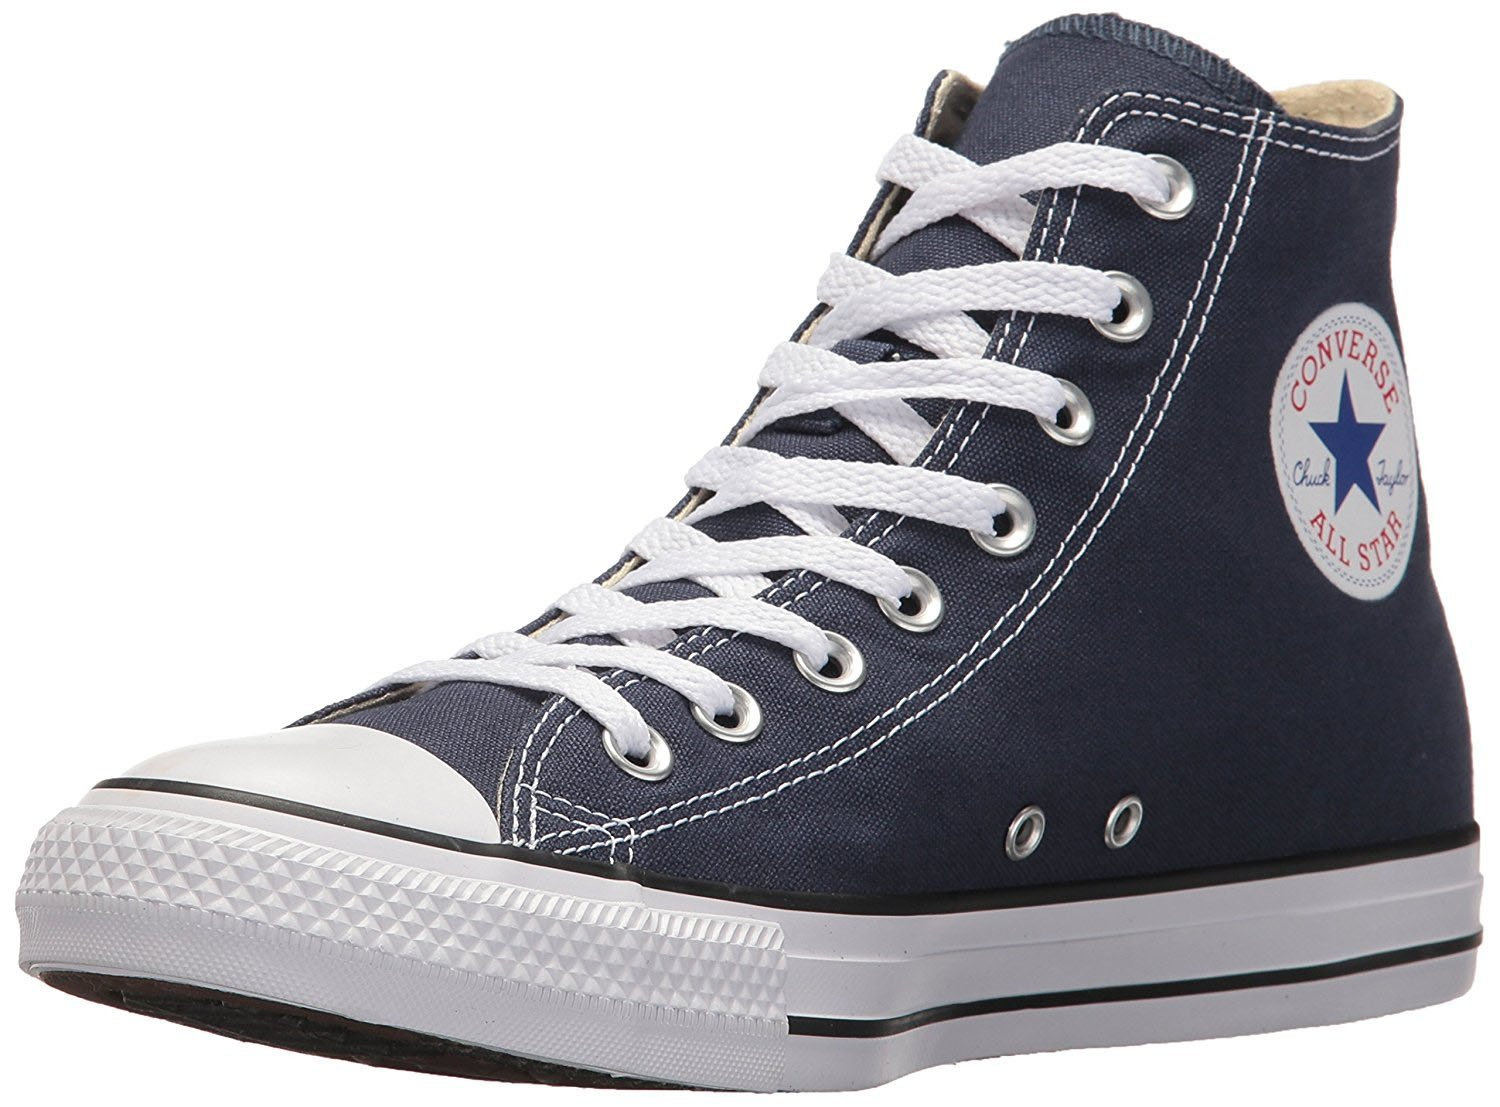 f71d11fa28bd Galleon - Converse Chuck Taylor All Star Classic High Top Sneakers - Navy  Converse  US Men 7.5   US Women 9.5